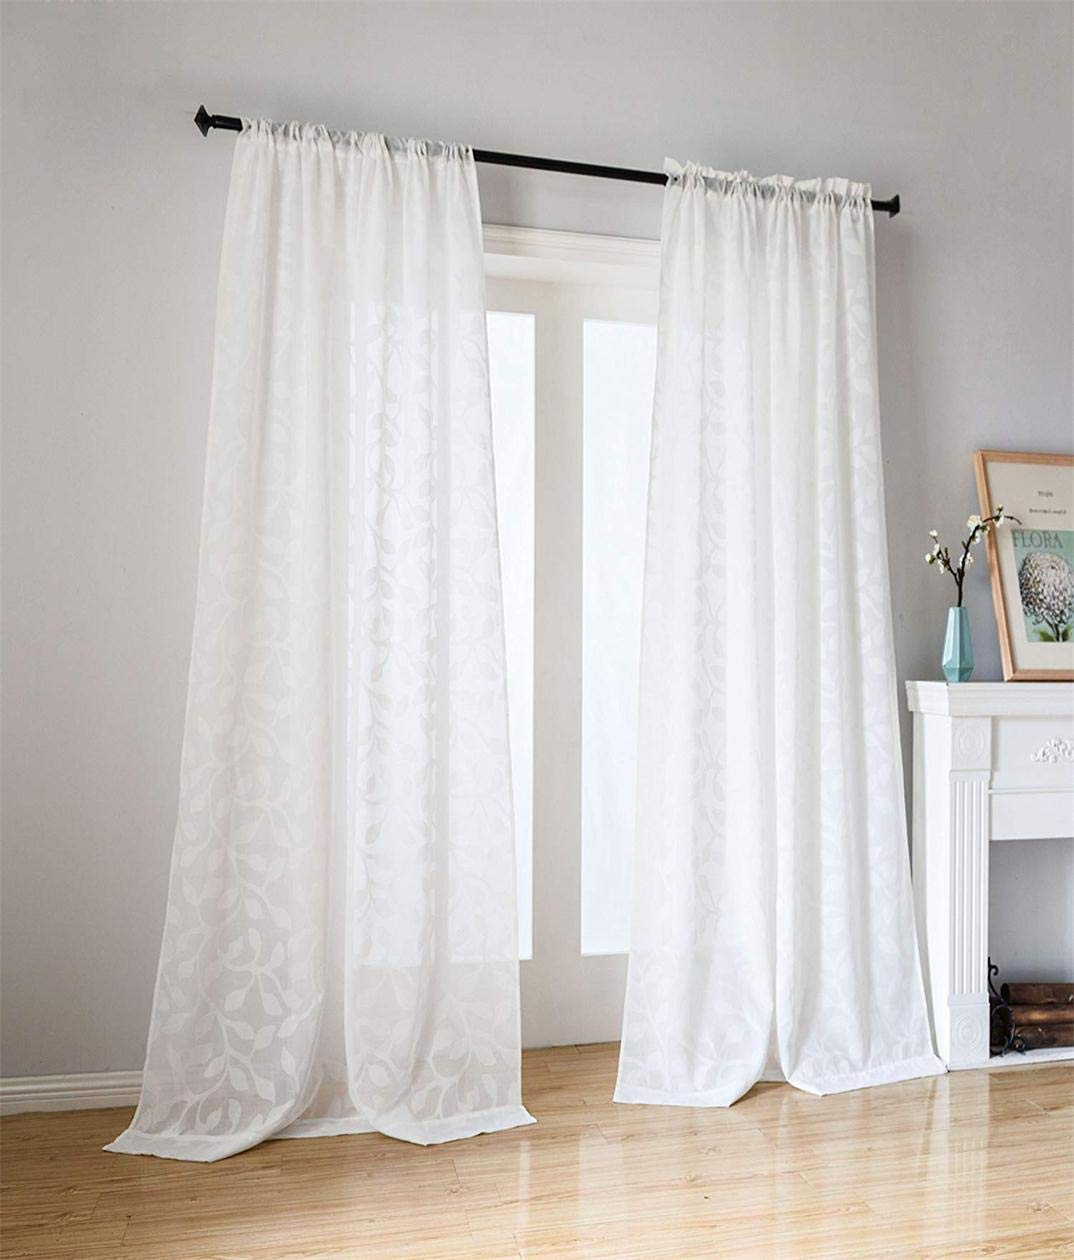 Taisier Home Cut Flower Design White Sheer Curtains,84 Long For Bedroom Curtains 2 Panel,Rod Pocket Semi Sheer Used For Sliding Glass Doorm,Elegant Sheers For Living Room(String Rod,52''×84'') by Taisier Home